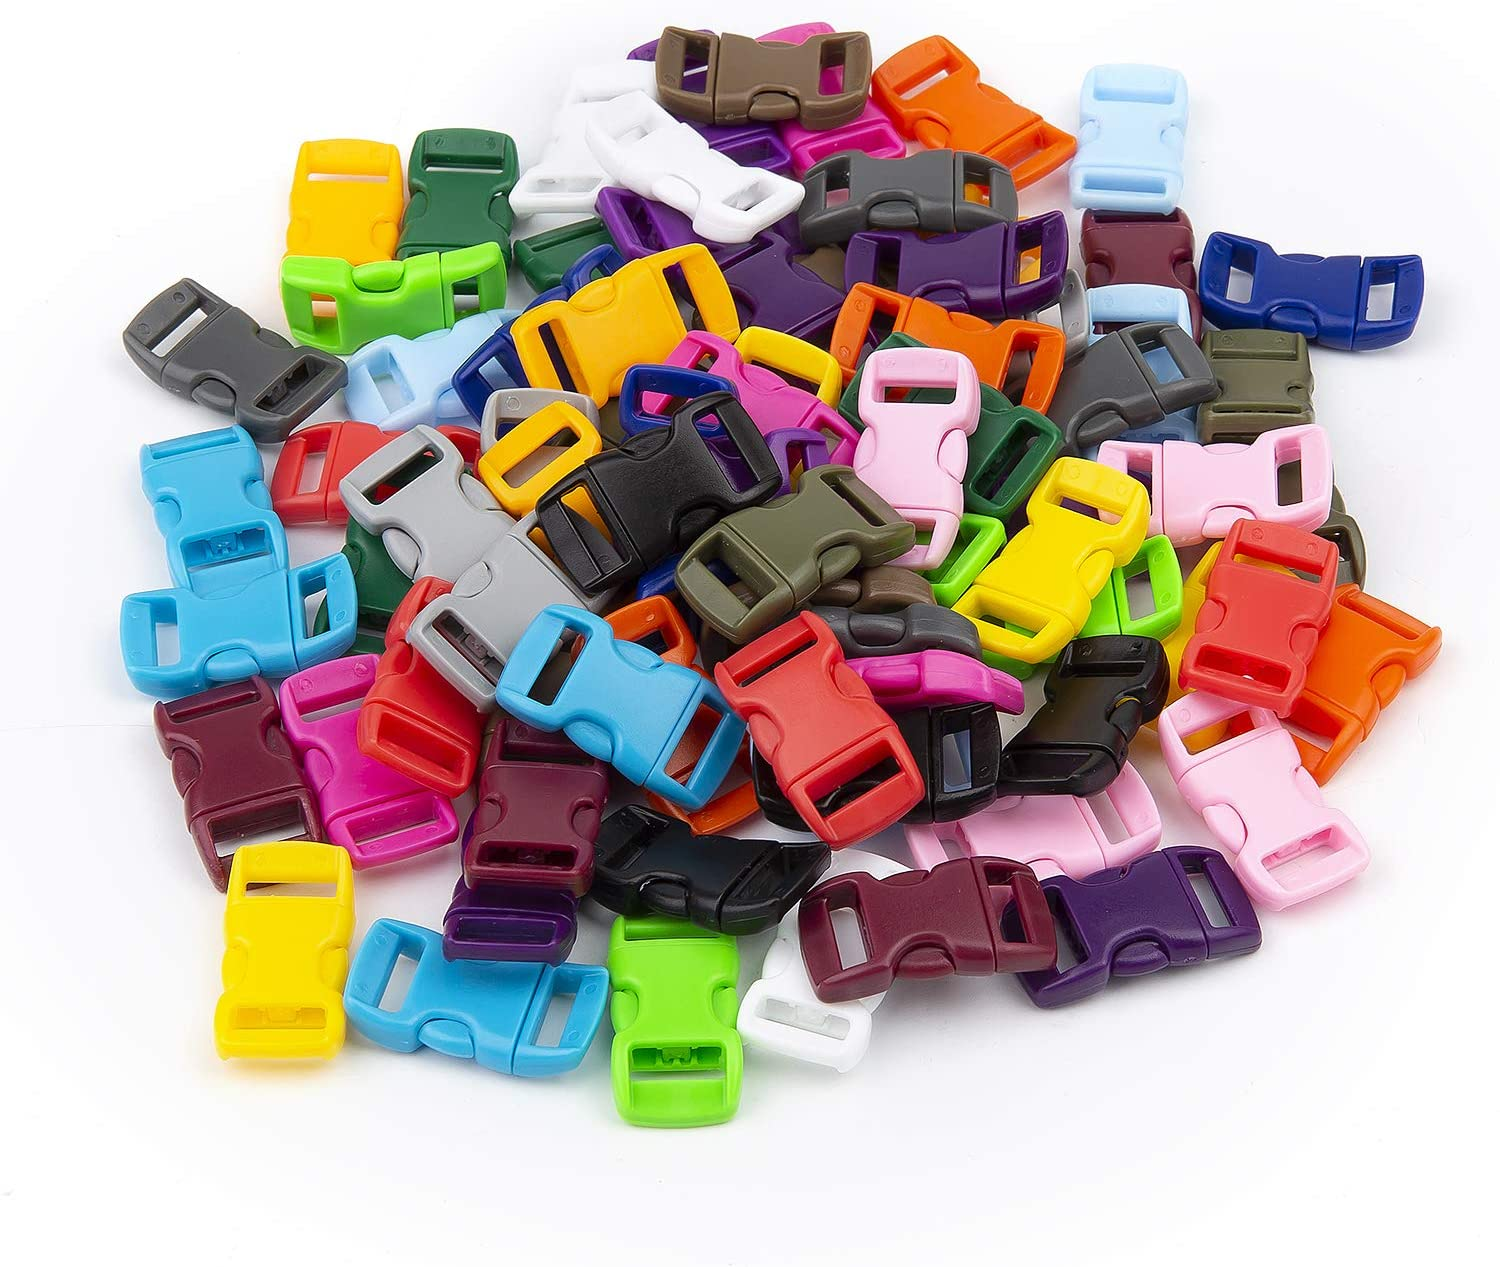 LEEUEE 100 Pack Side Release Plastic Buckles 3//8 Inch Double Adjustable Snap Clips for Paracord Bracelets Luggage Straps Pet Collar Backpack in Assorted Colors No Sewing Required